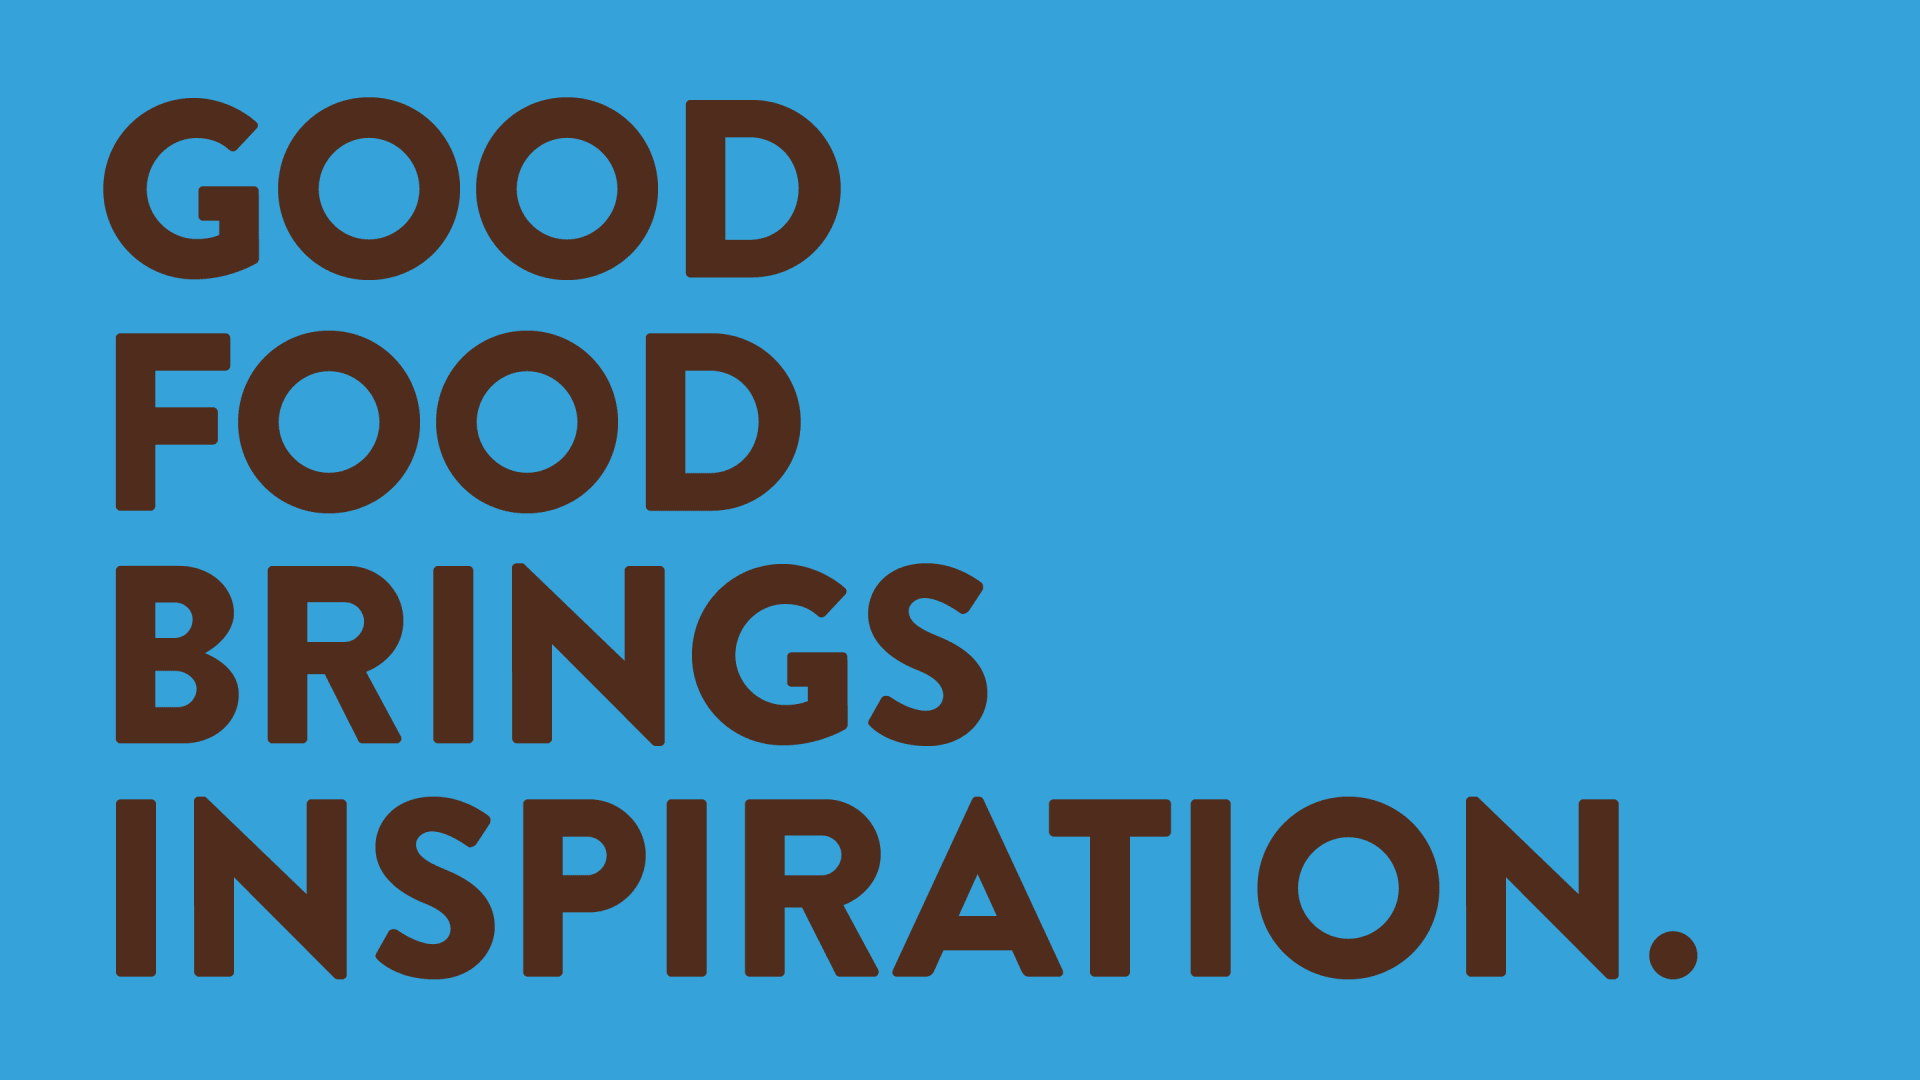 Cauldron brand messaging – good food brings inspiration